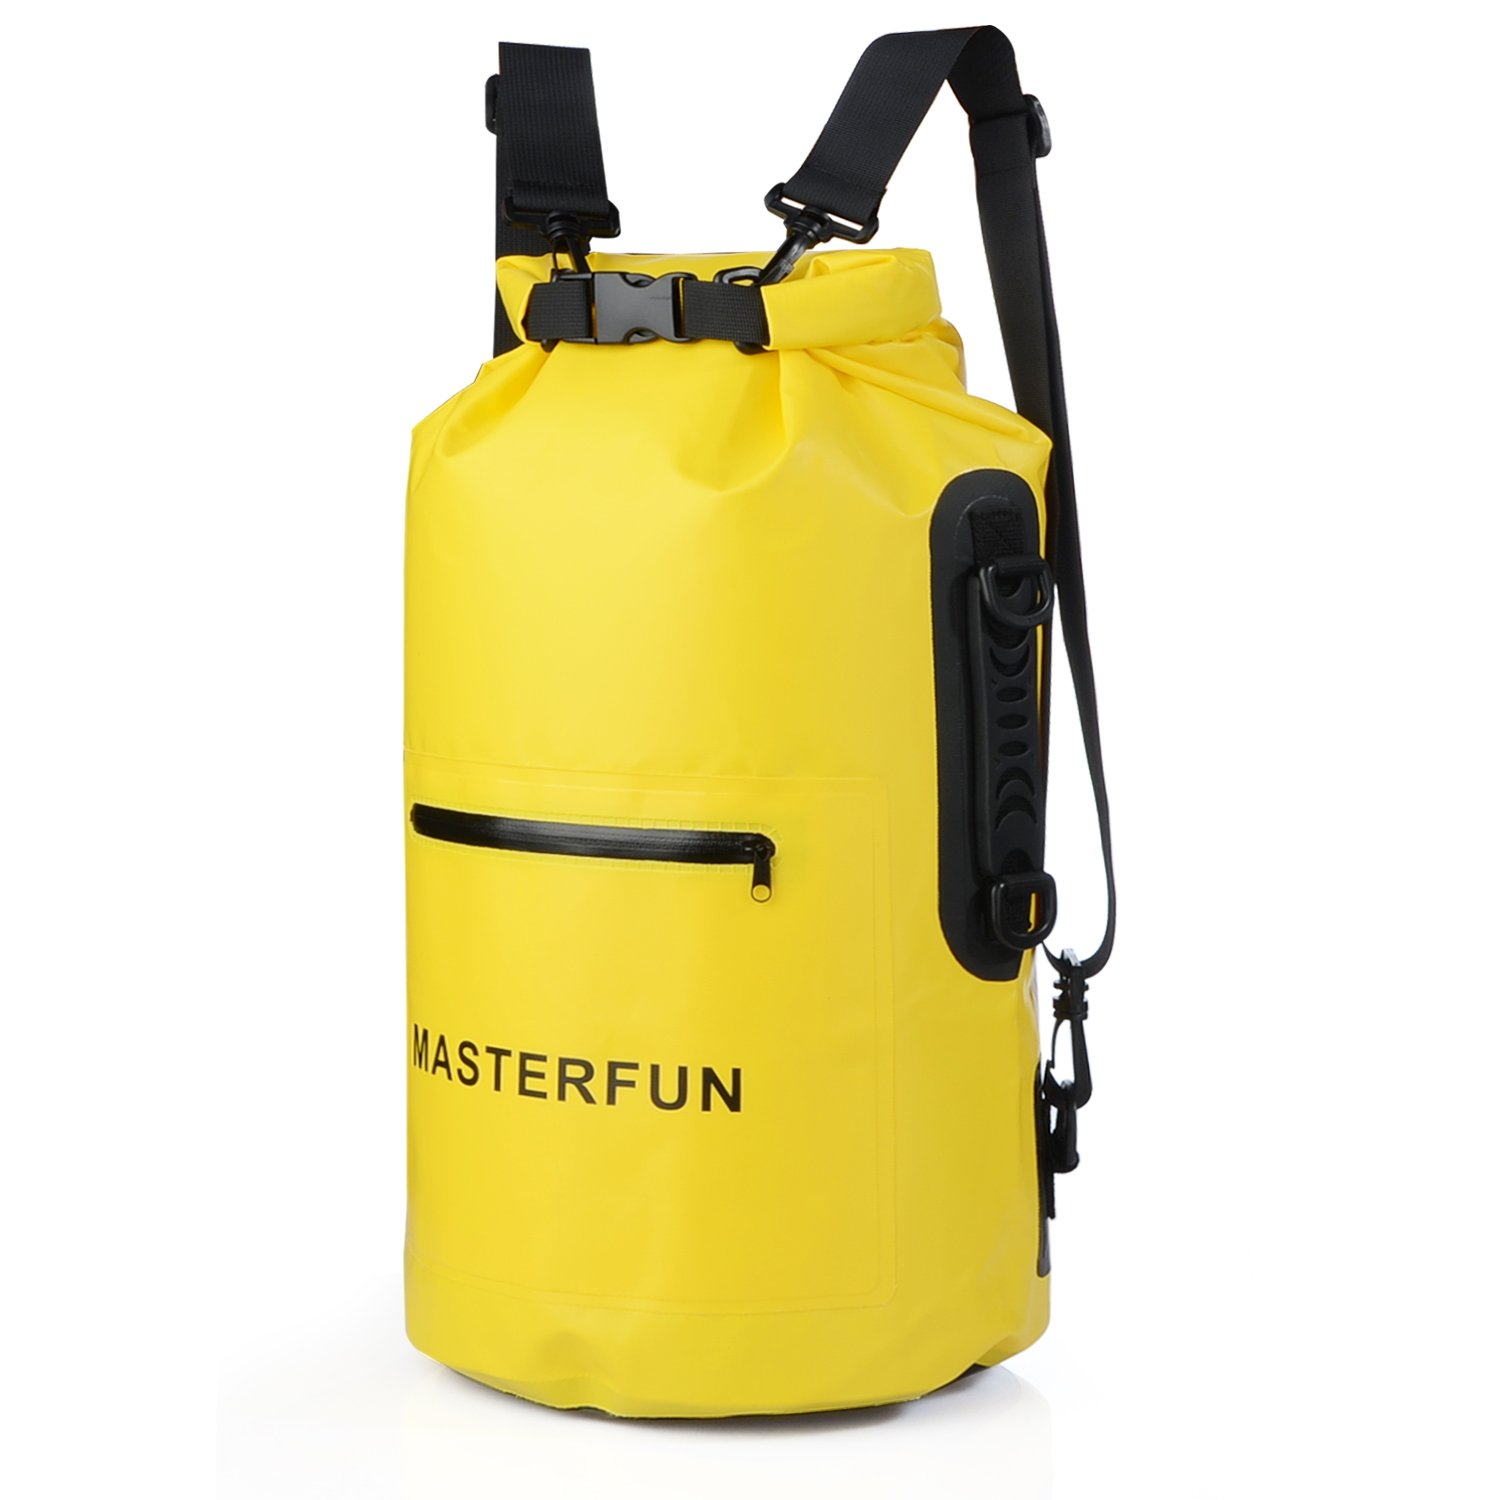 MASTERFUN Dry Bag Waterproof Backpack Gym Sack w/ Exterior Pocket Waterproof Zipper & Shoulder Strap & Handle for Boating Camping Kayaking Yellow 20L